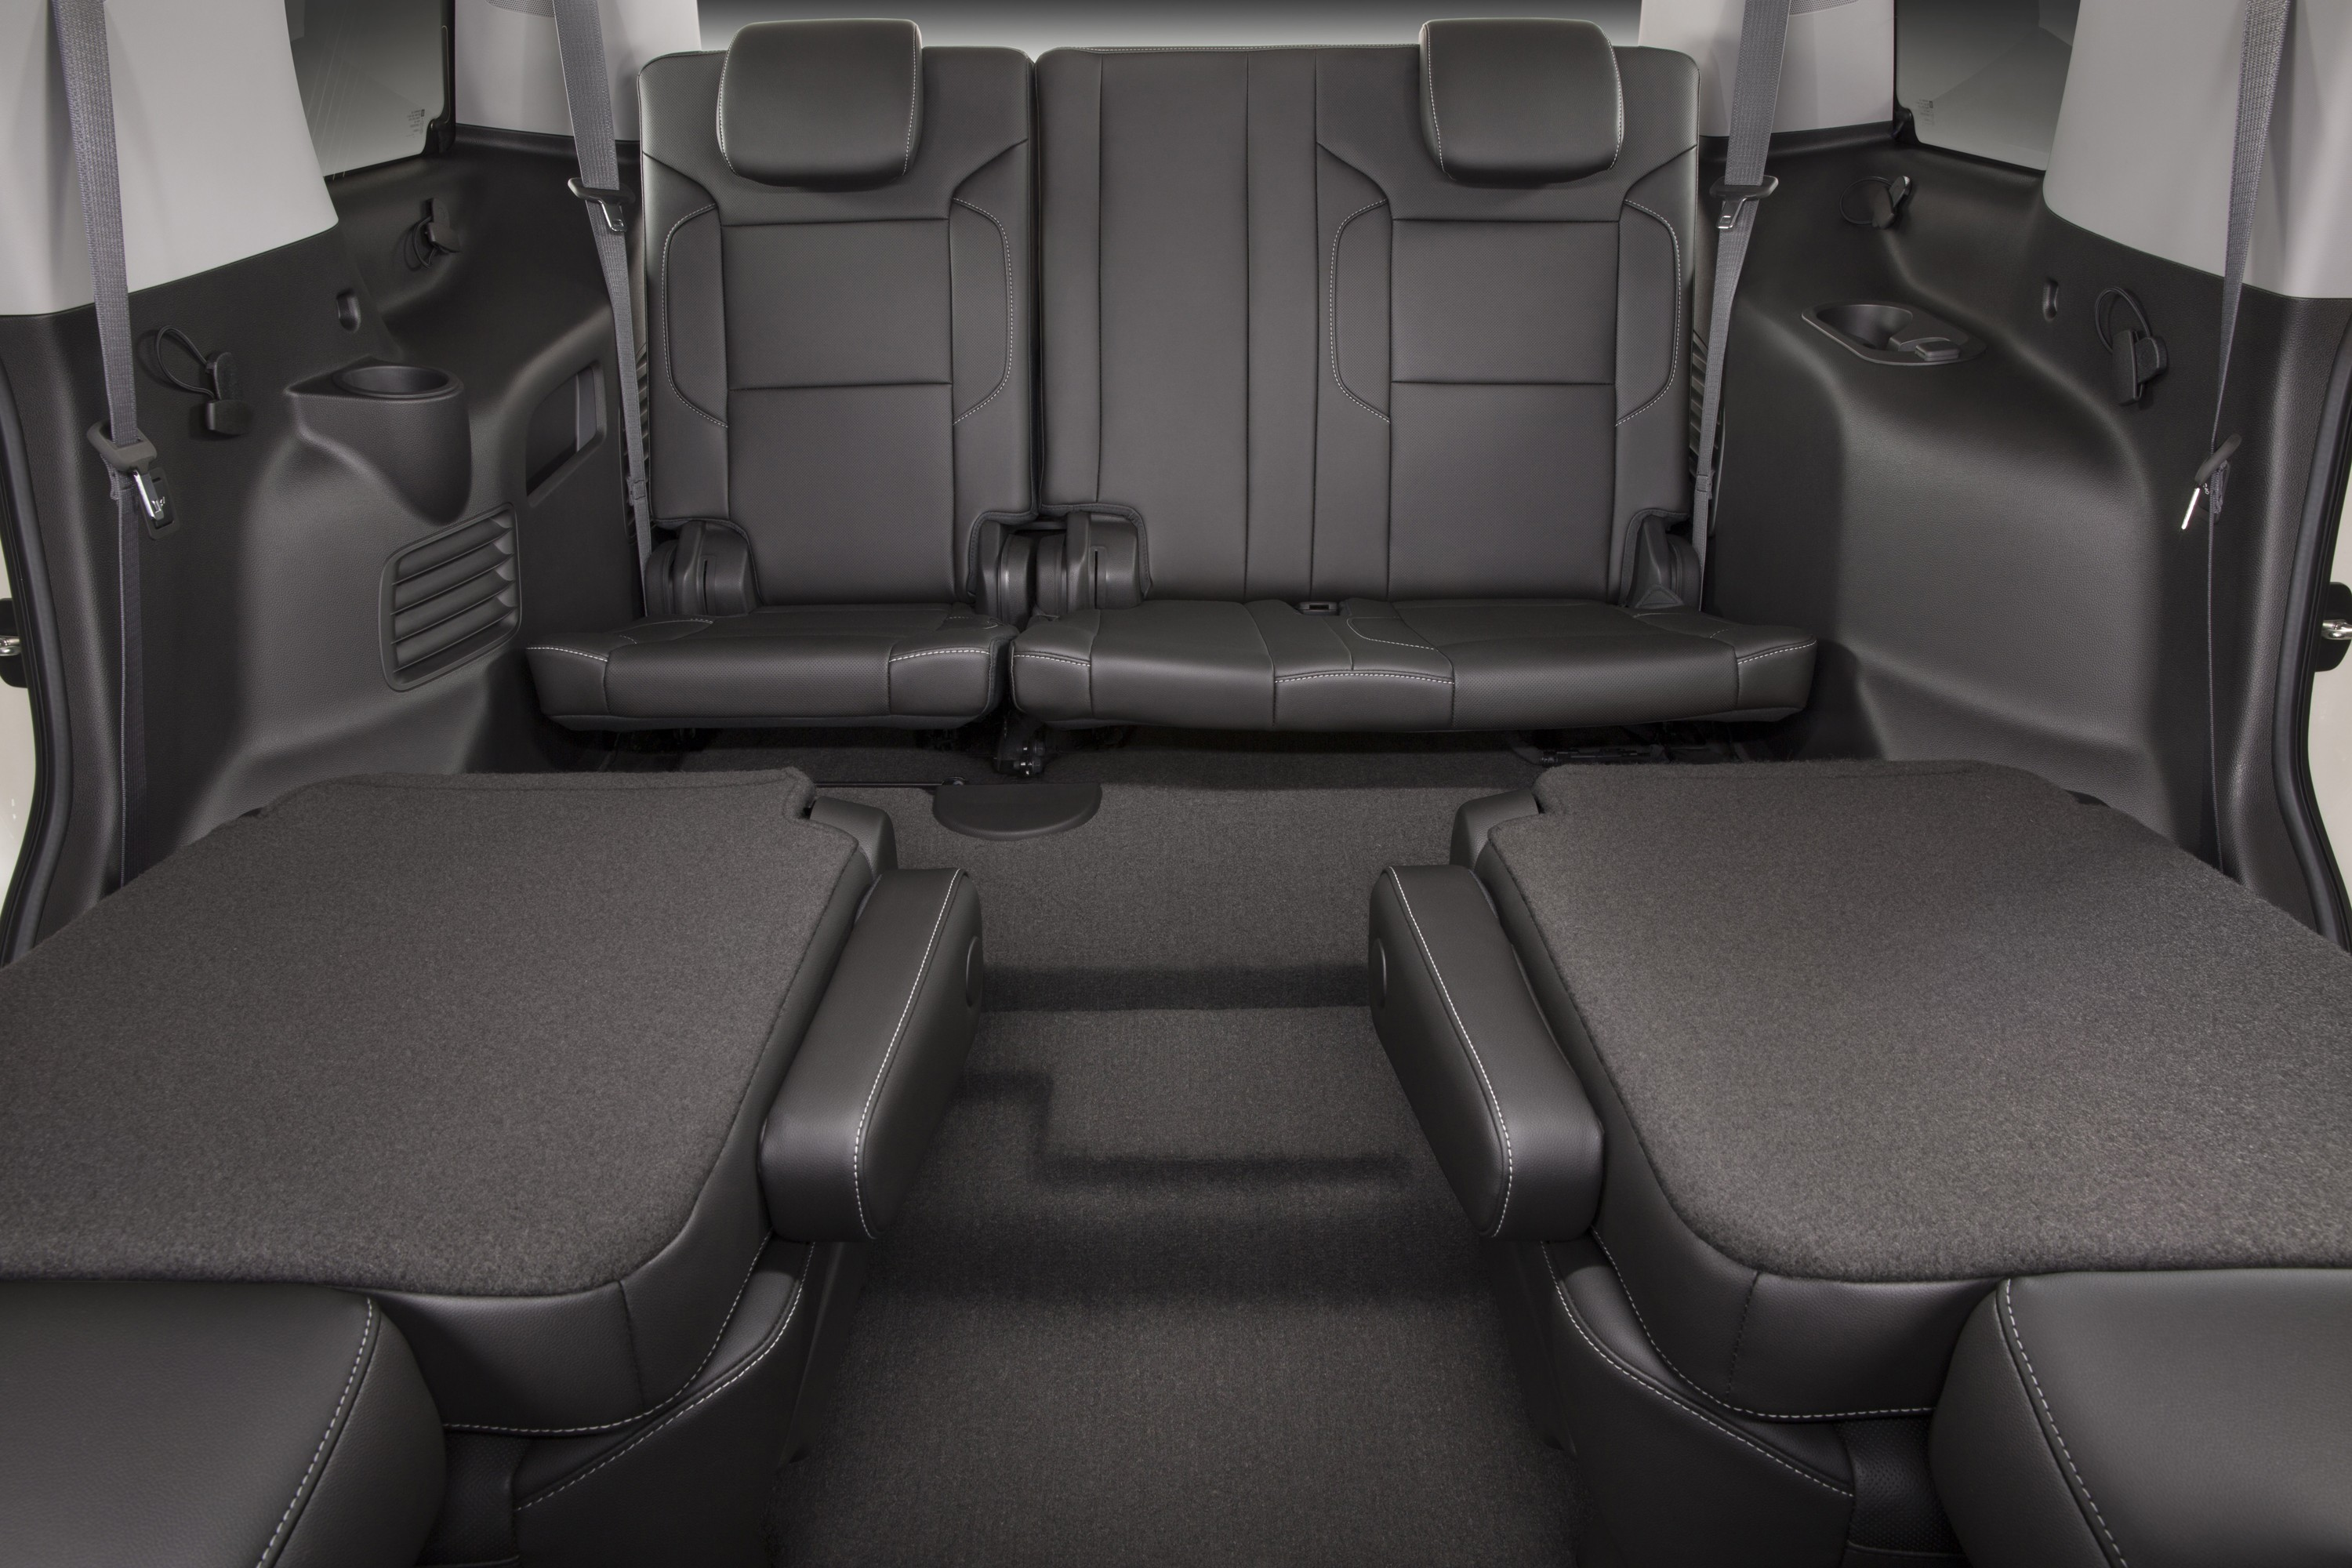 Chevy Tahoe Interior Dimensions Steampresspublishing Com